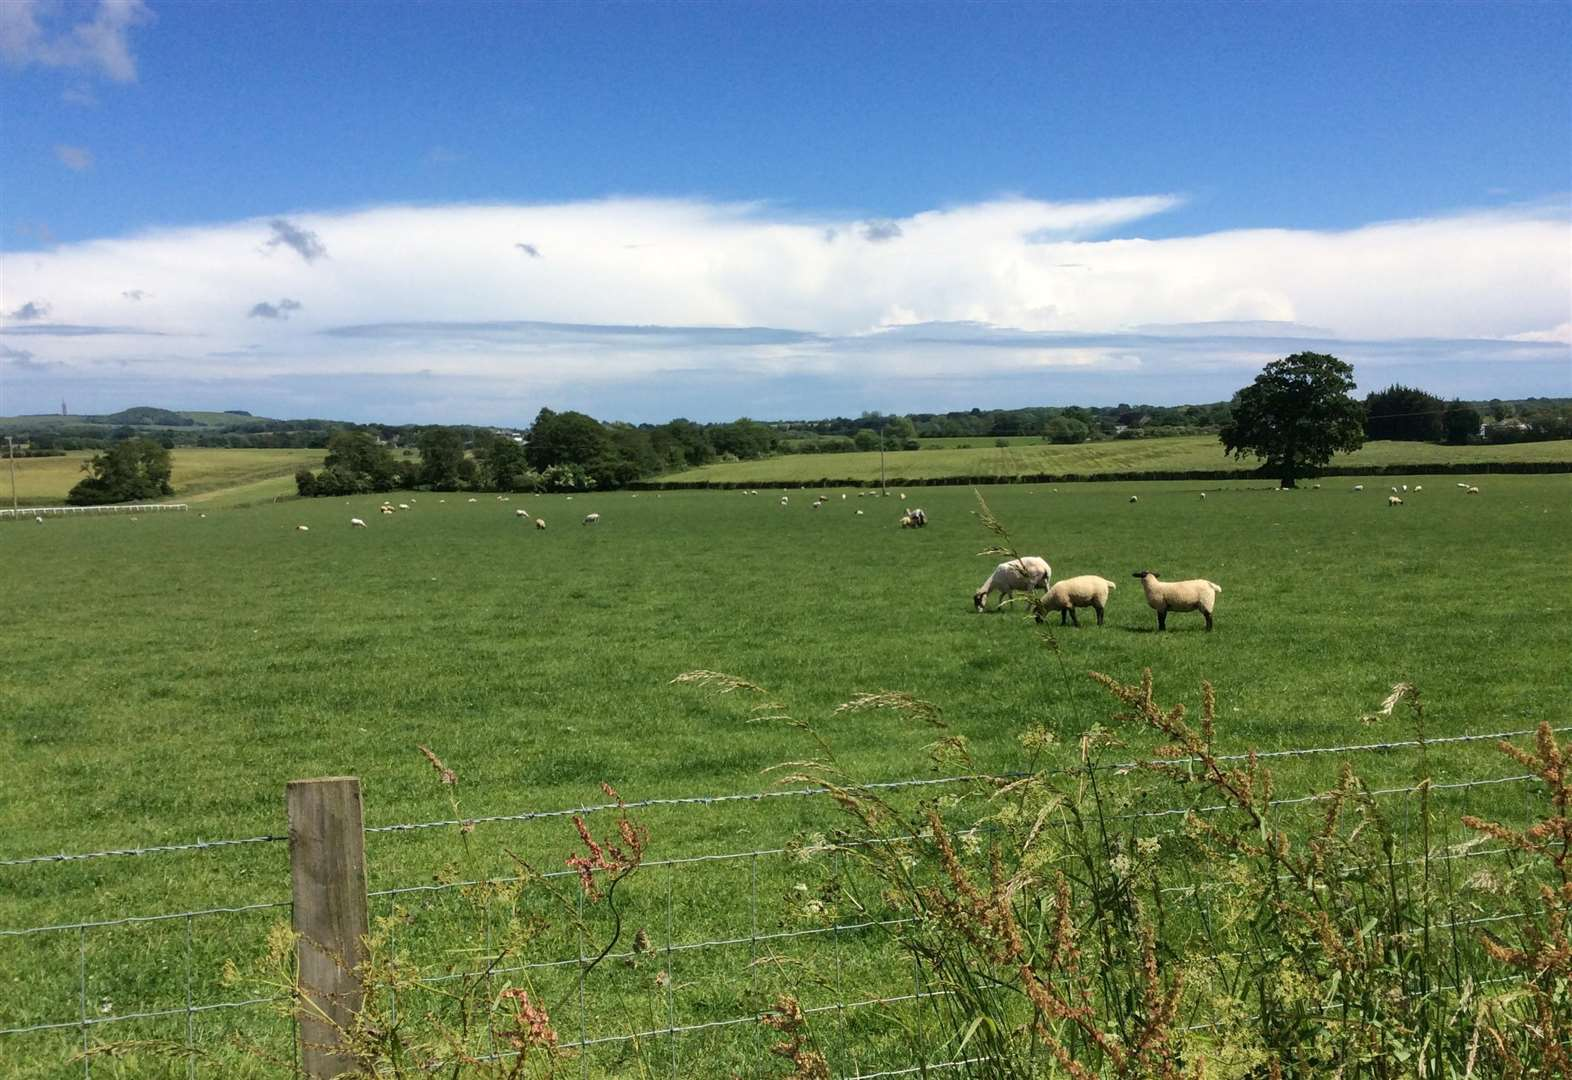 Council tells farmer 'get off your land'